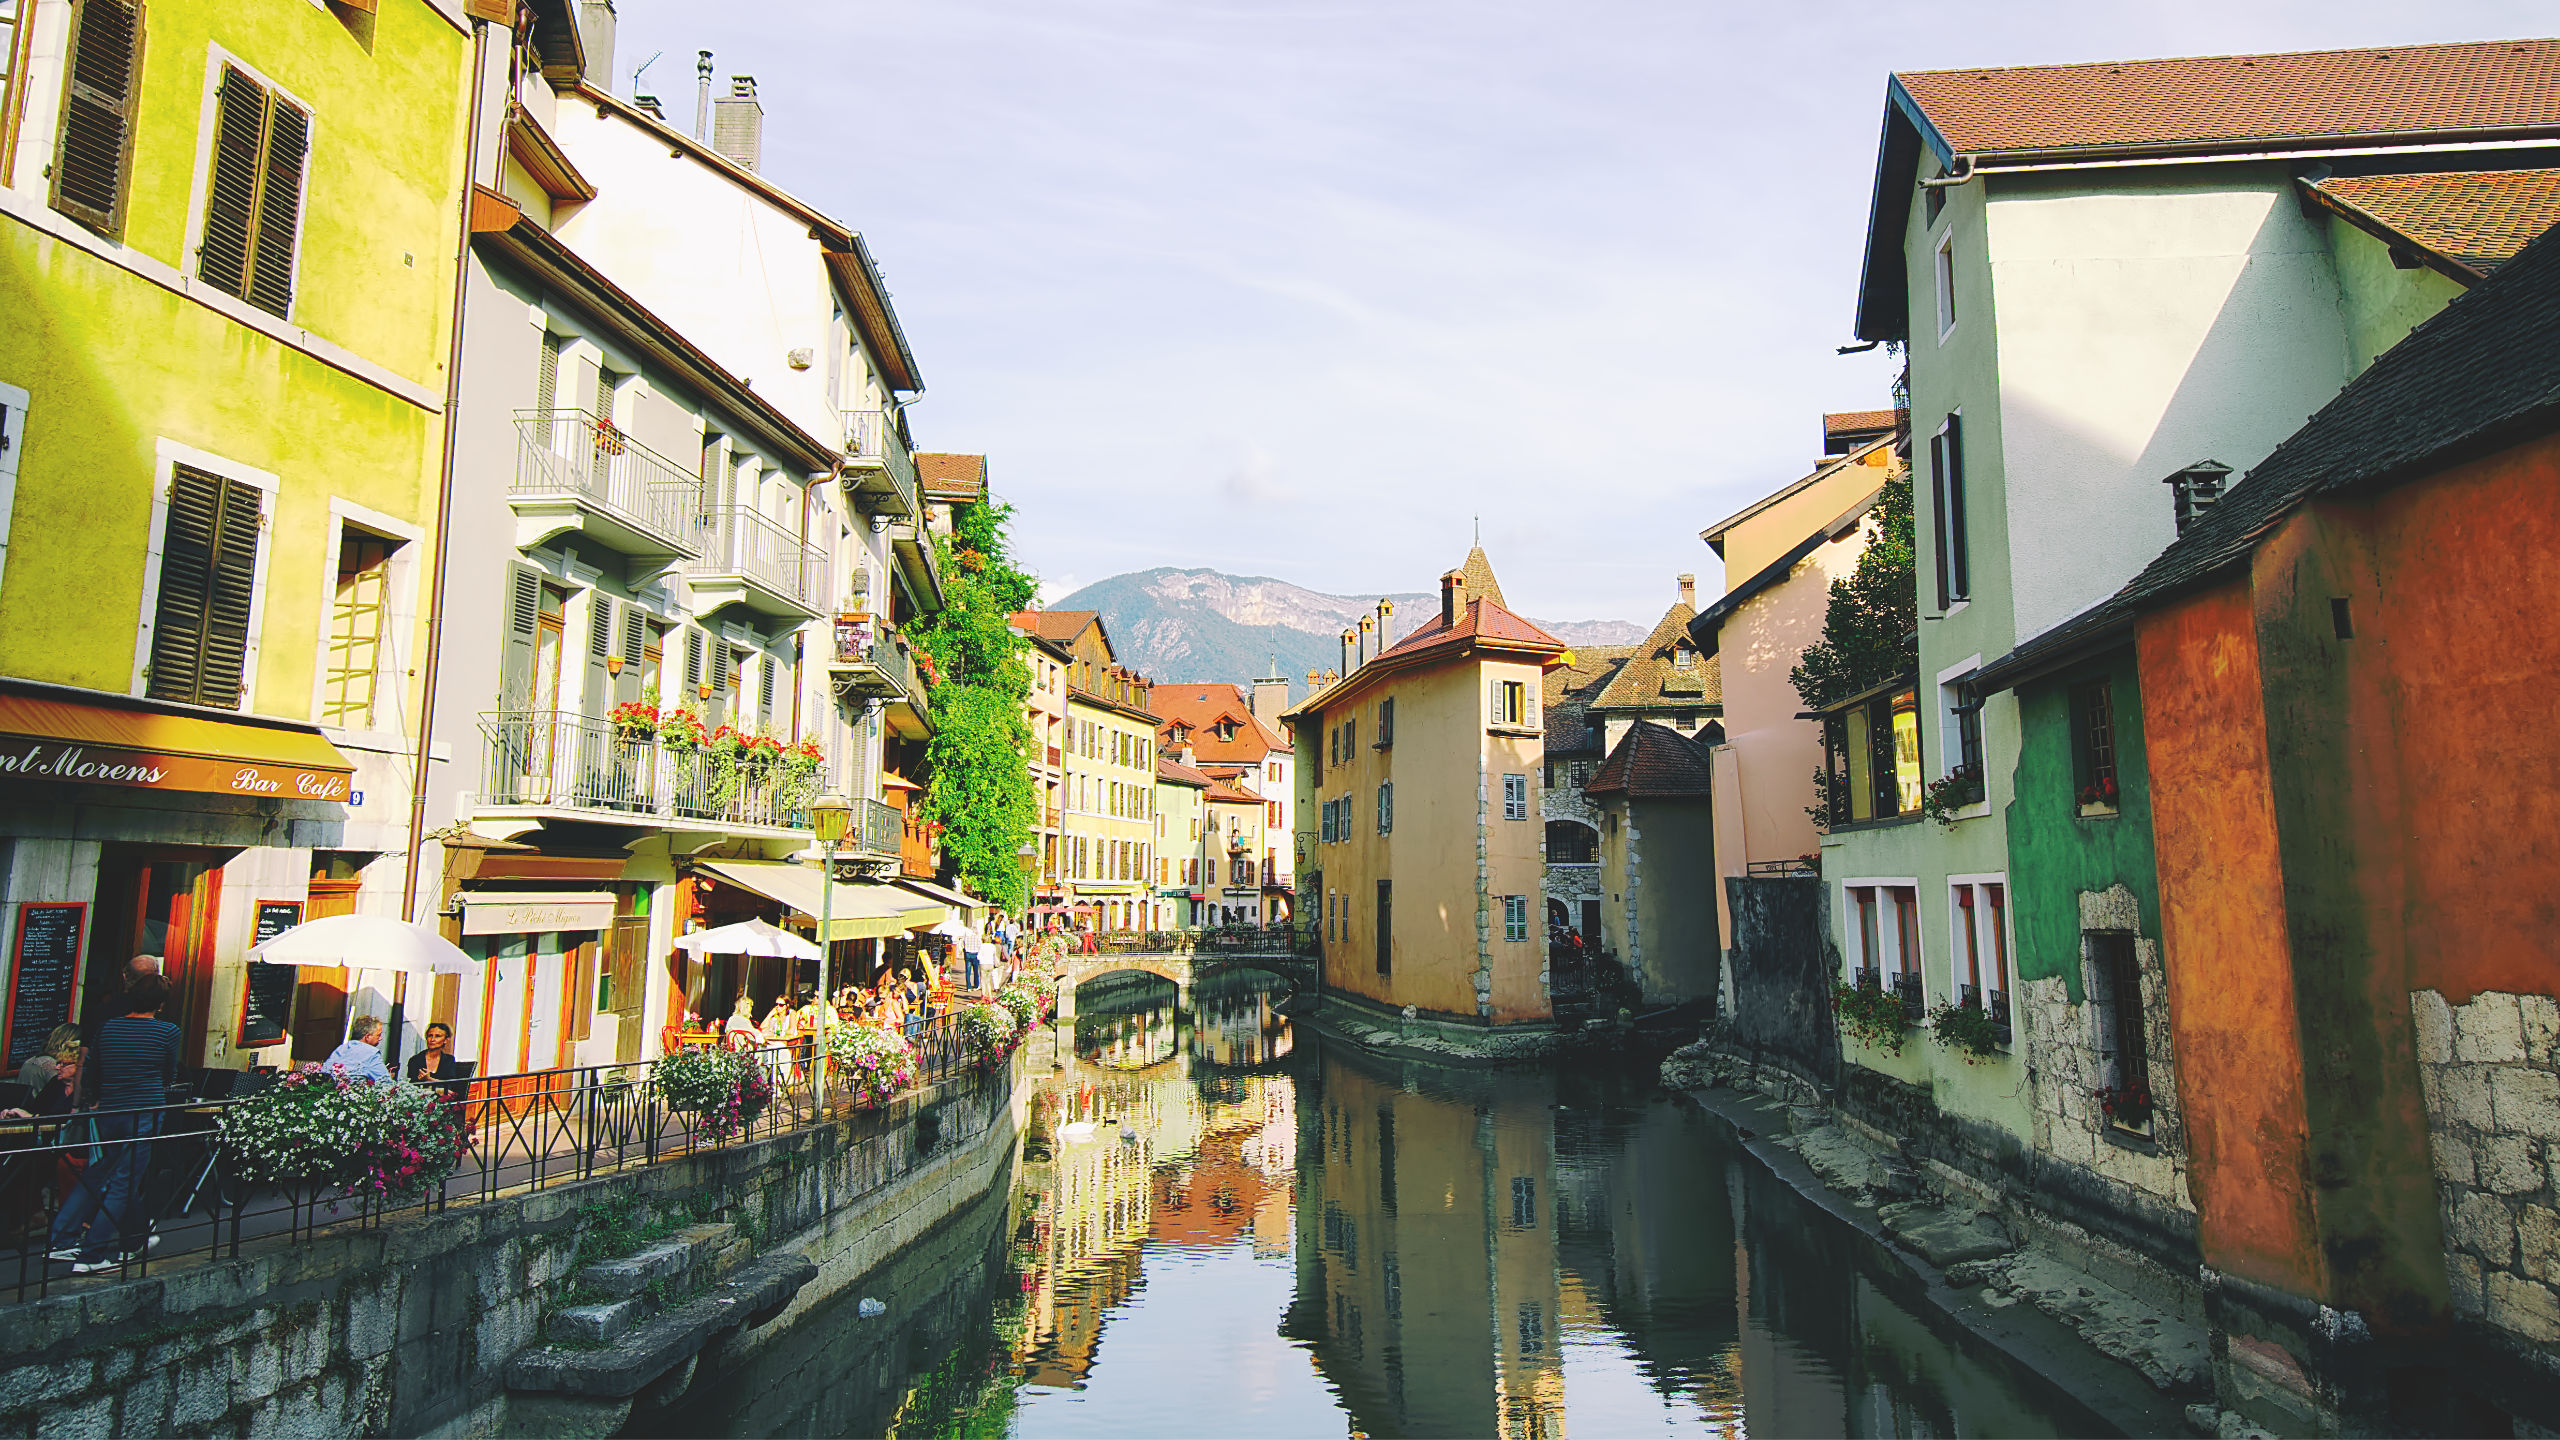 The canals in Annecy Venice of the Alps in France